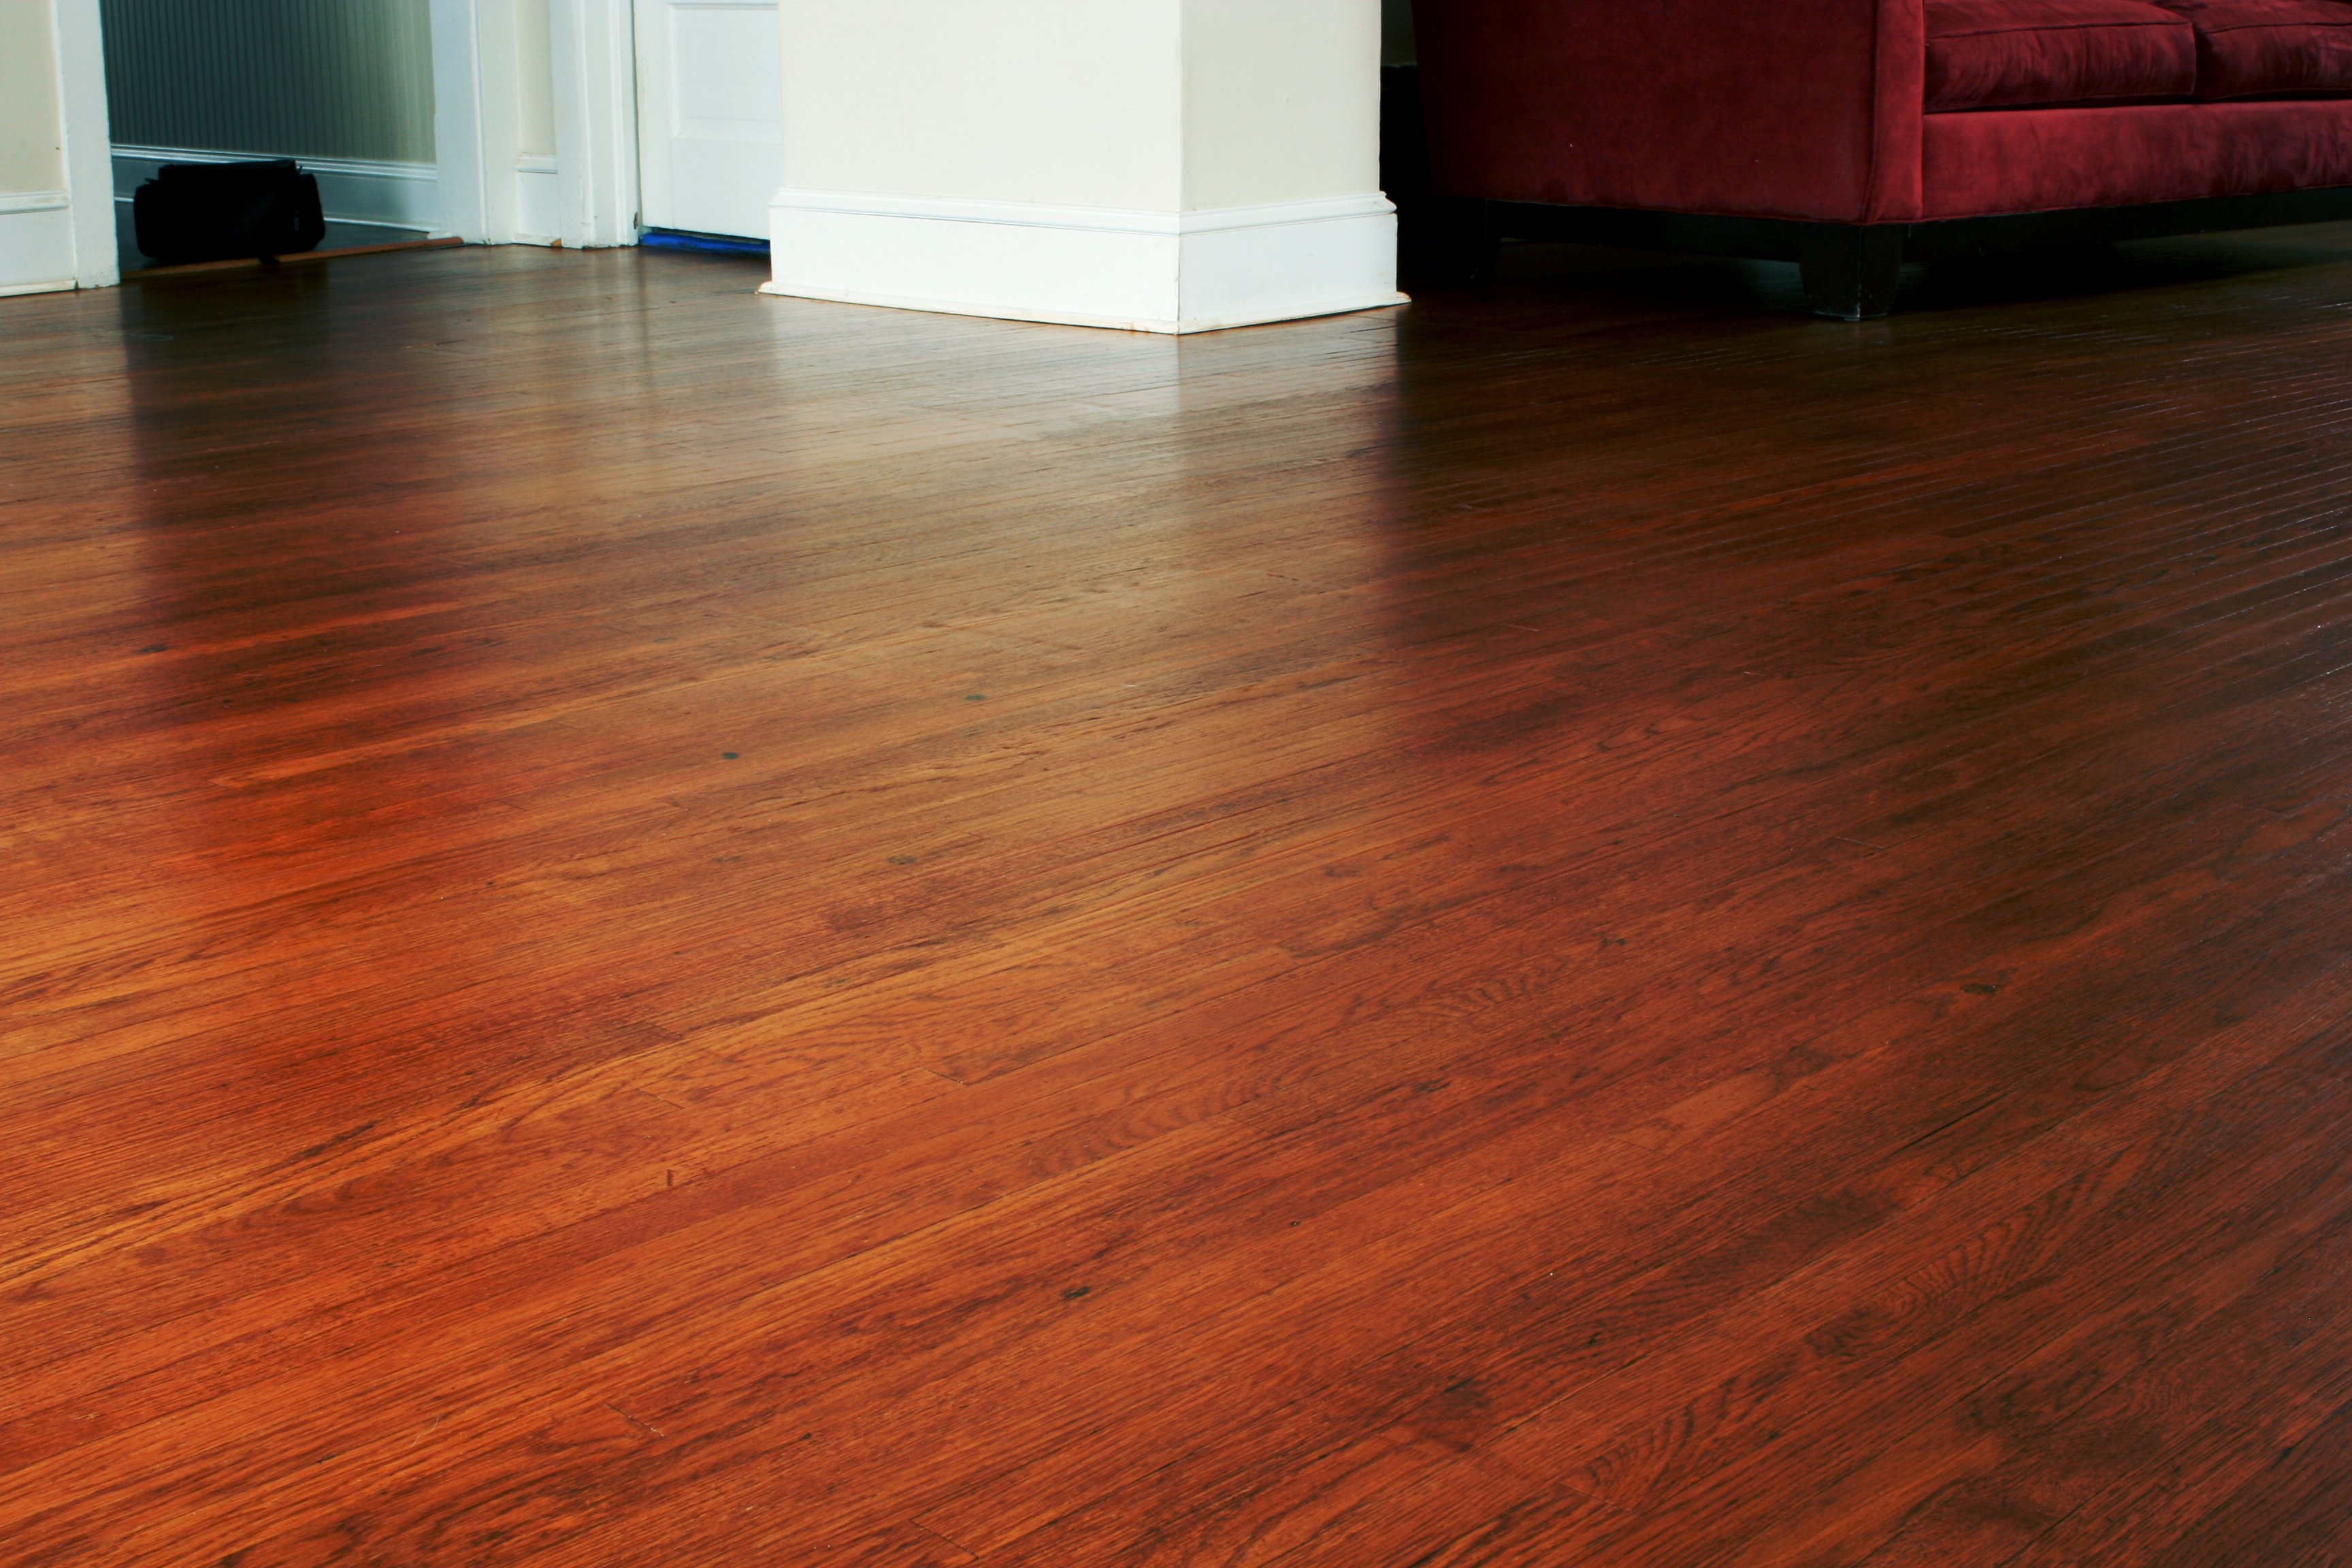 How To Diagnose And Repair Sloping Floors Homeadvisor